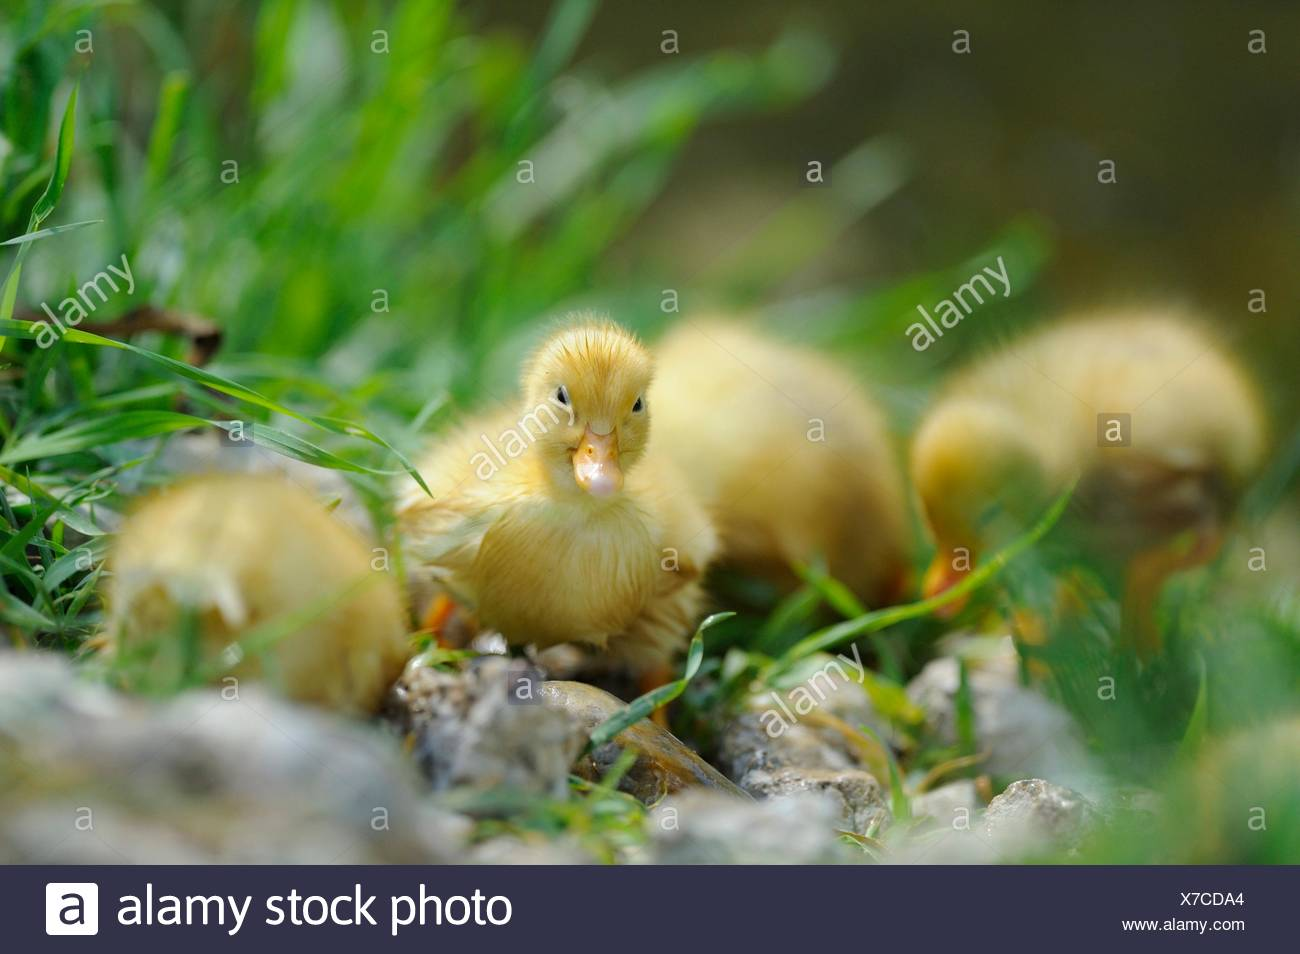 Long Island duck chicks - Stock Image